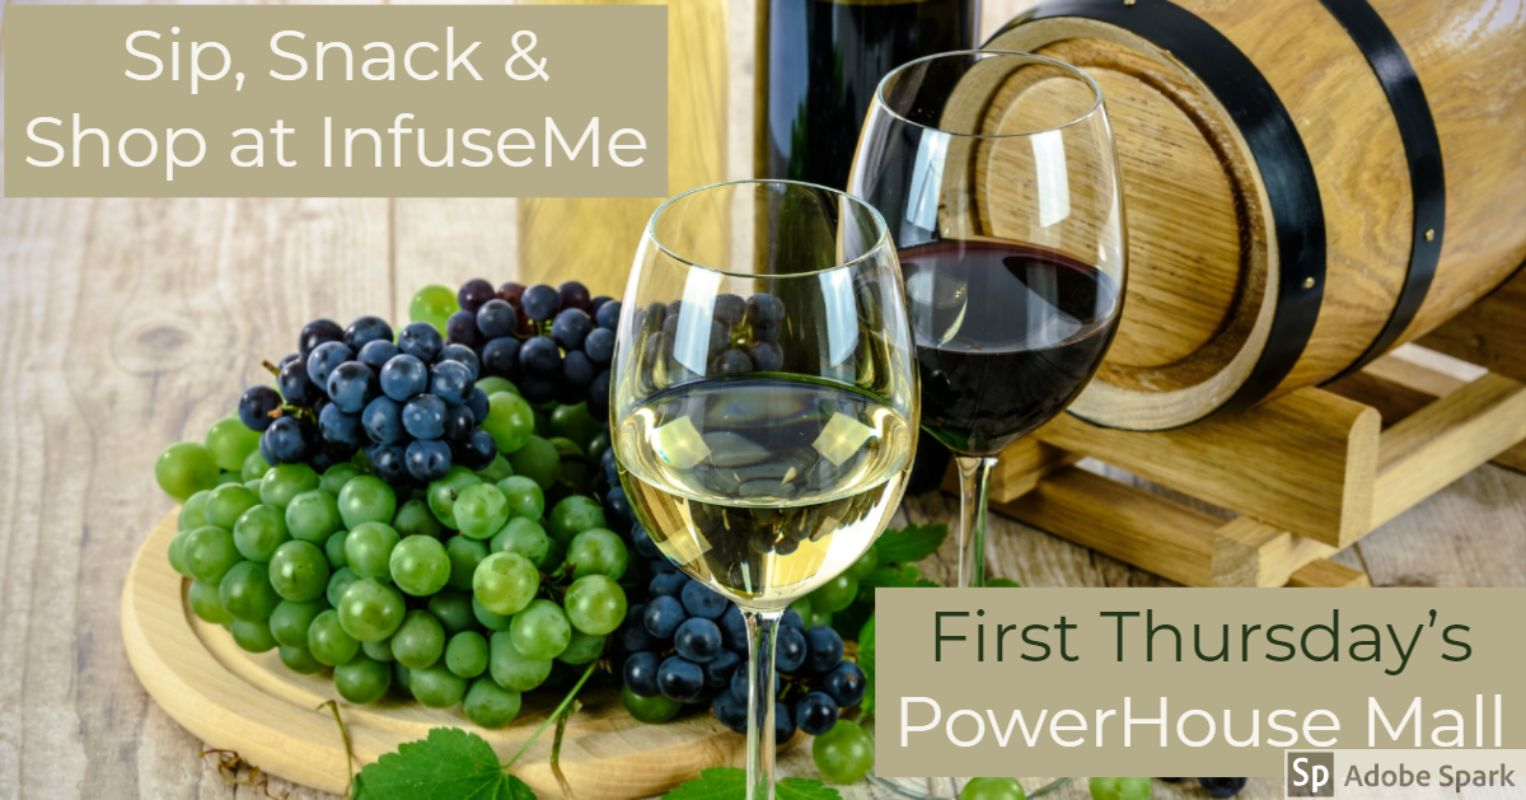 infusemeinc tastingcenter powerhousemallshopping firstthursdays foodtasting winetasting shoplocal uppervalley lebanon hanover enfield